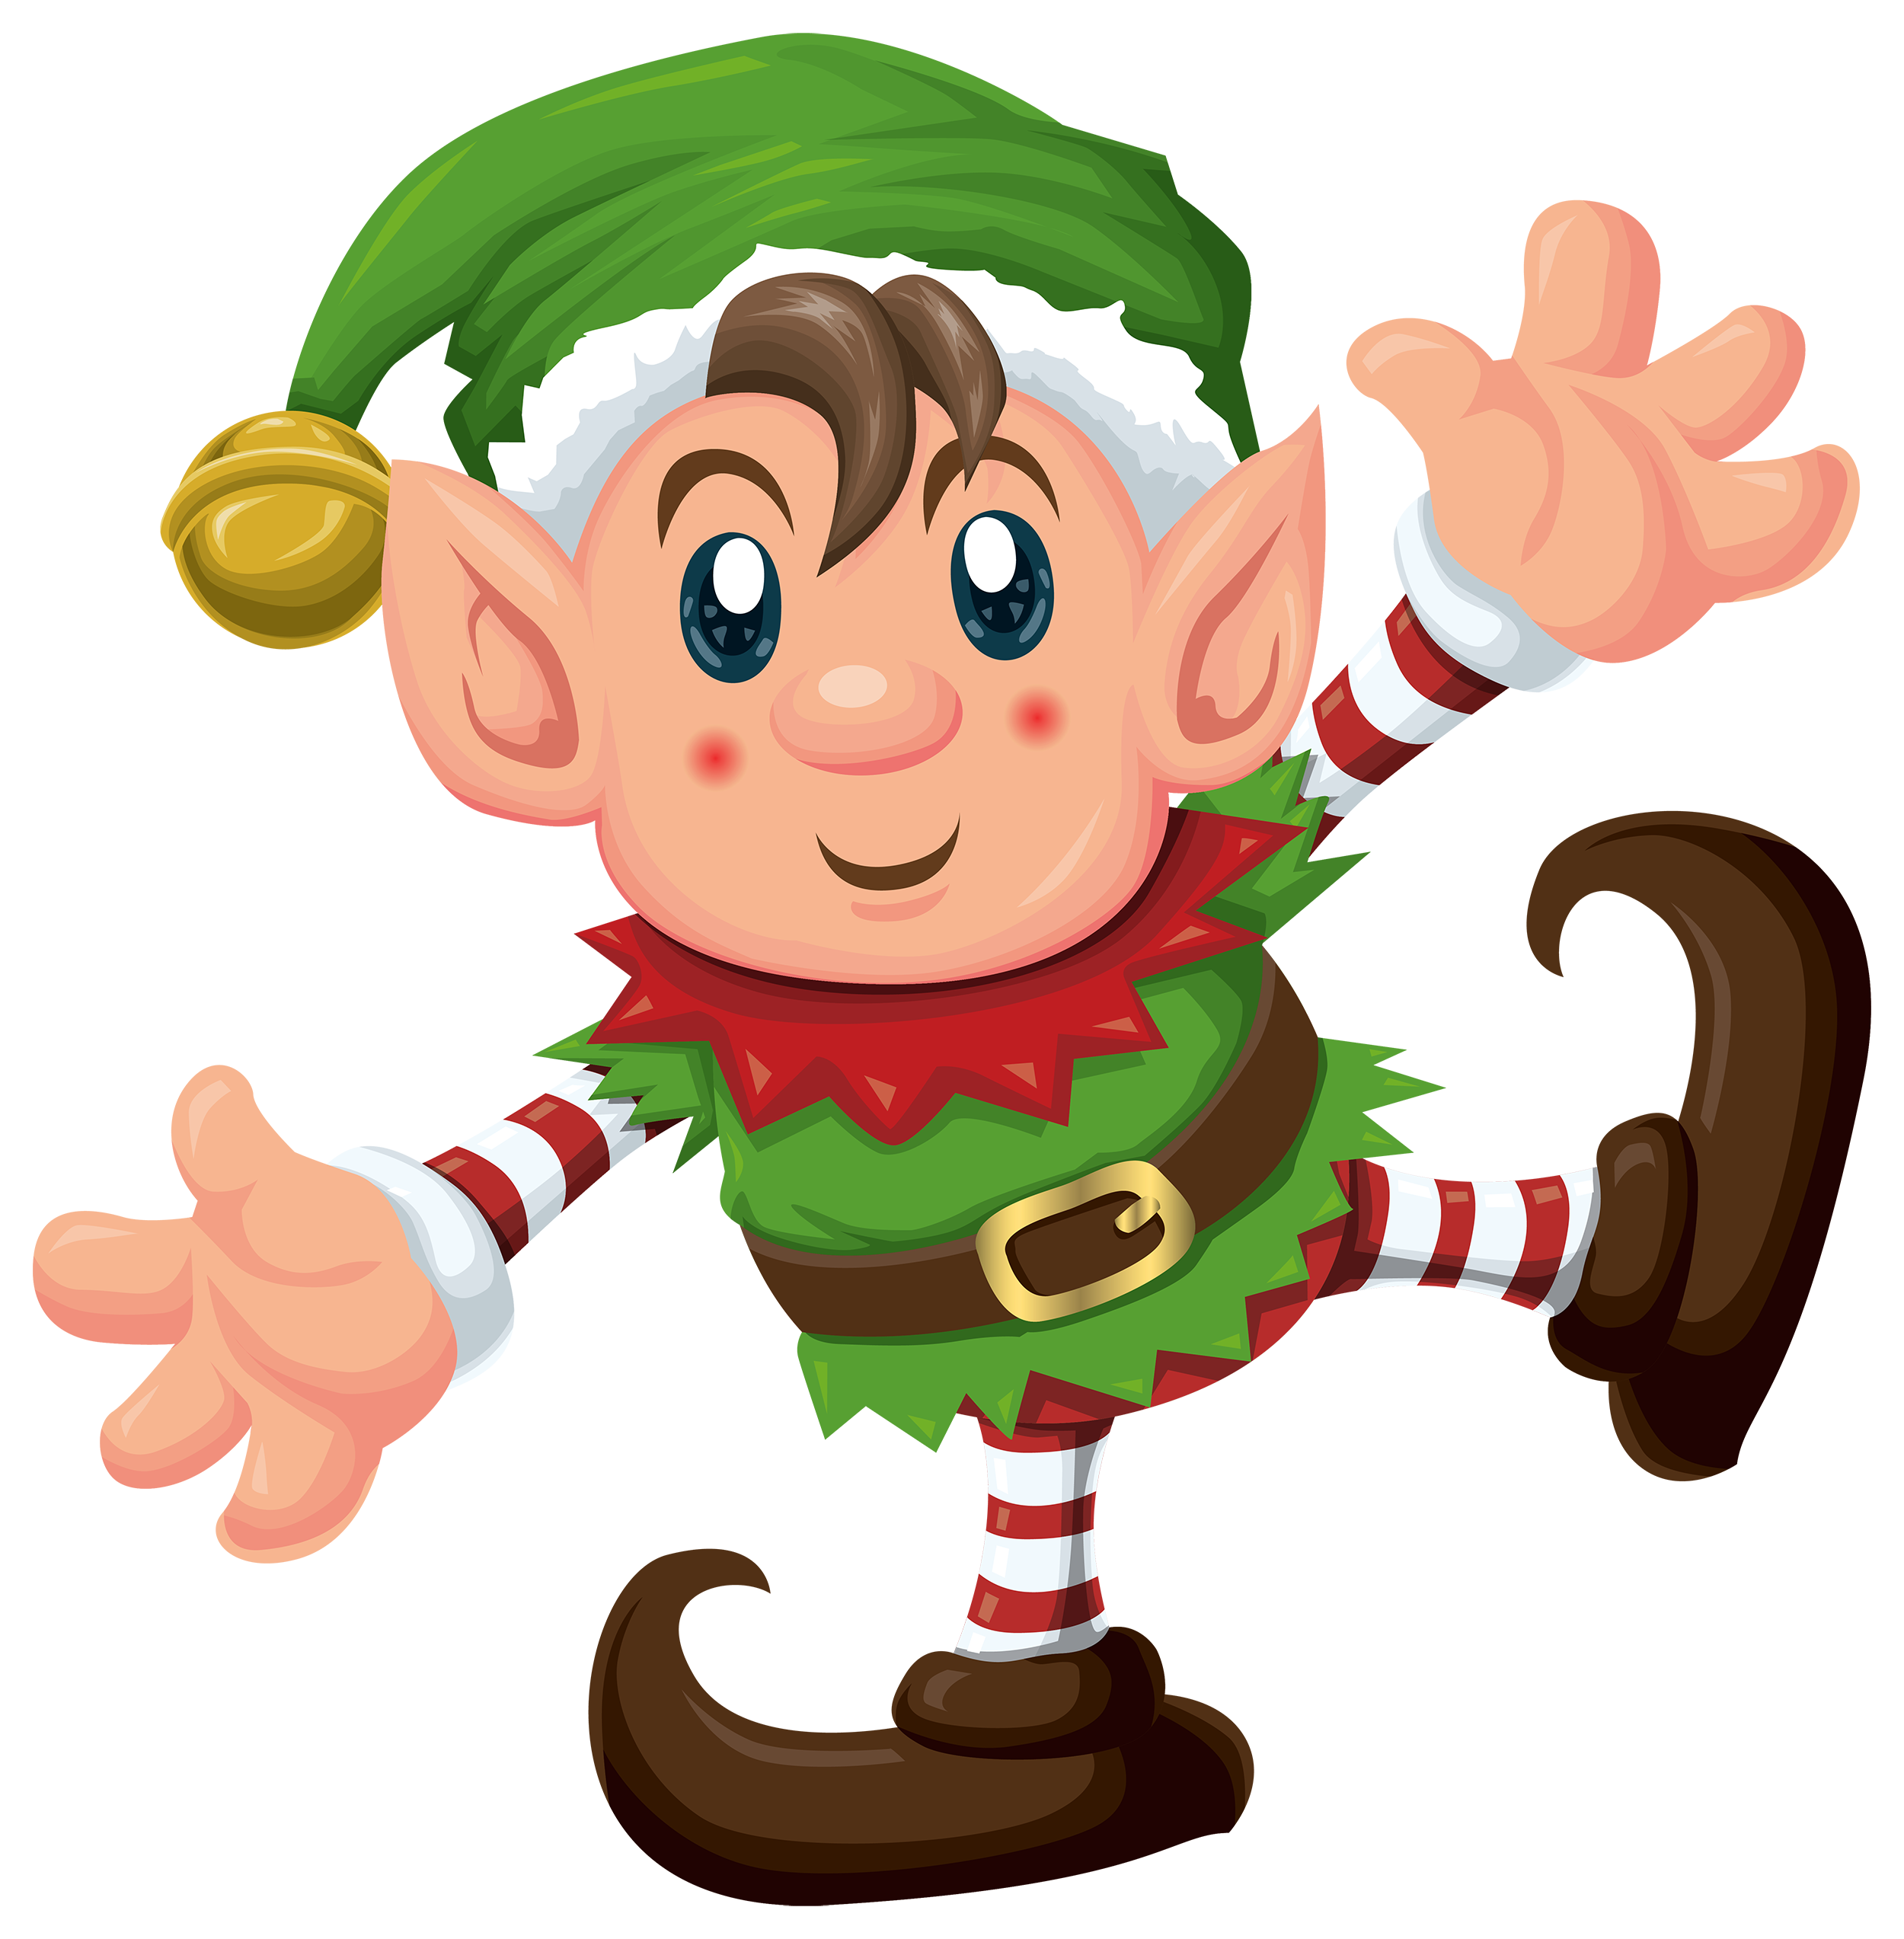 png transparent library Cute png pinterest elves. Elf clipart.